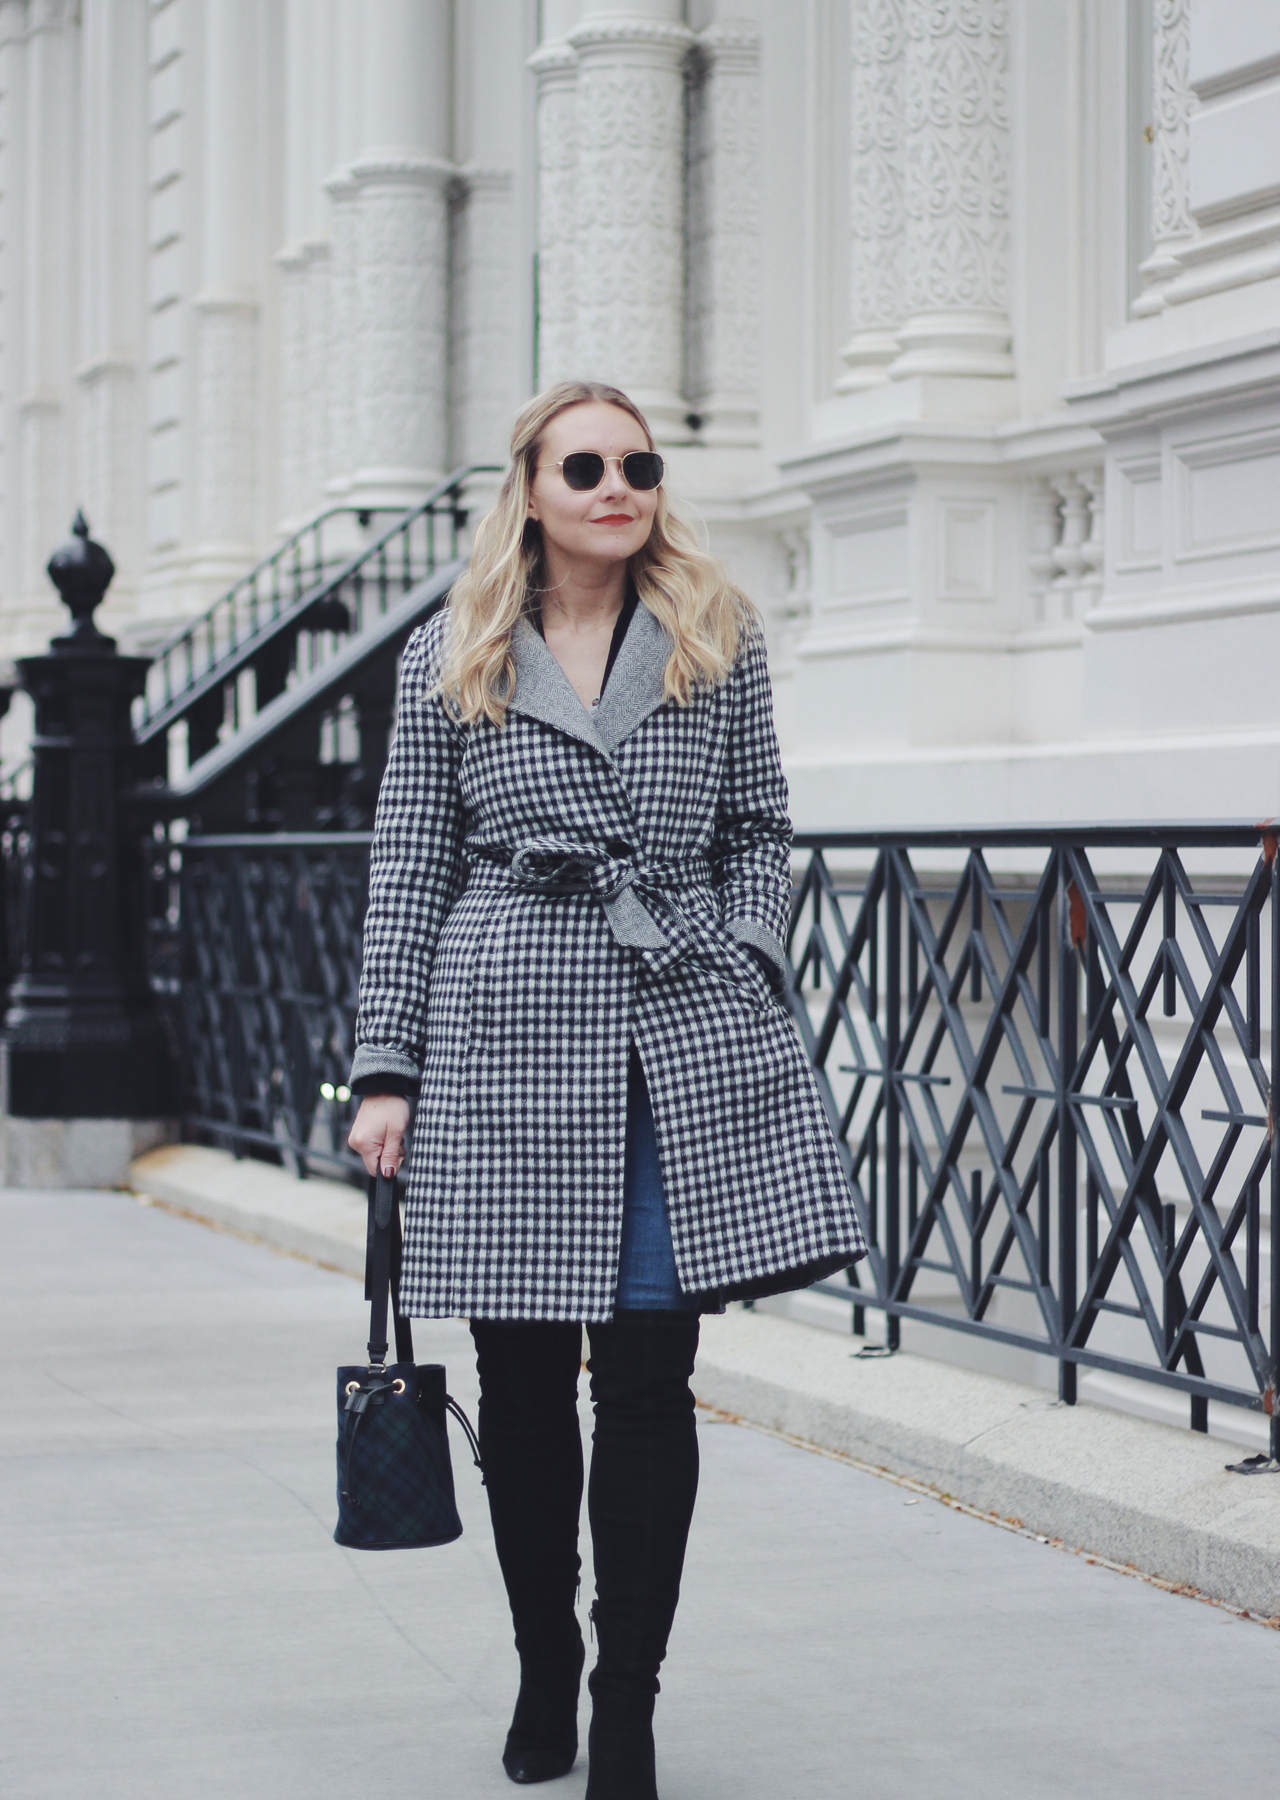 The Steele Maiden: Best of Winter Coats